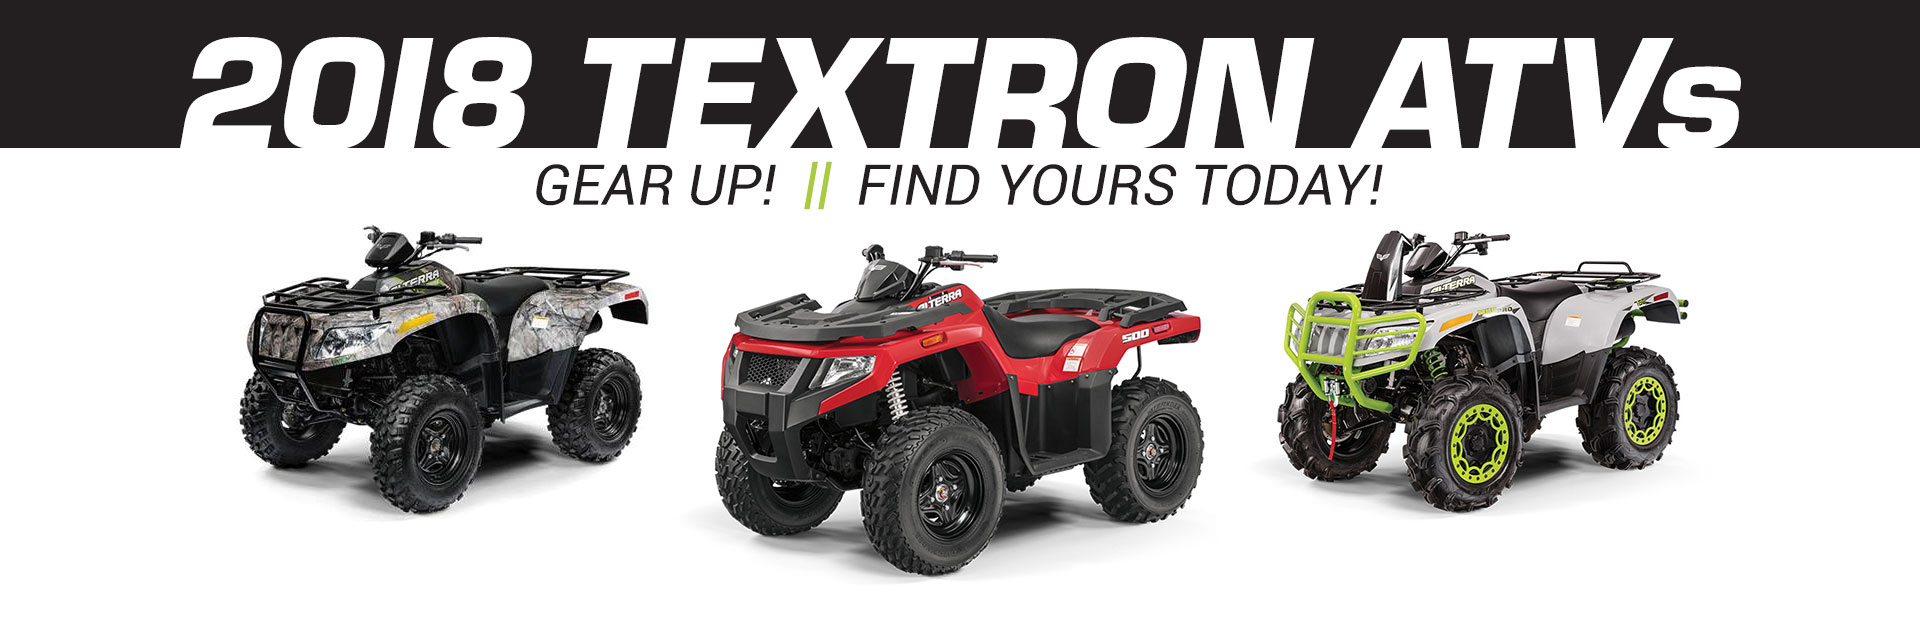 2018 Textron ATVs: Click here to view the models!